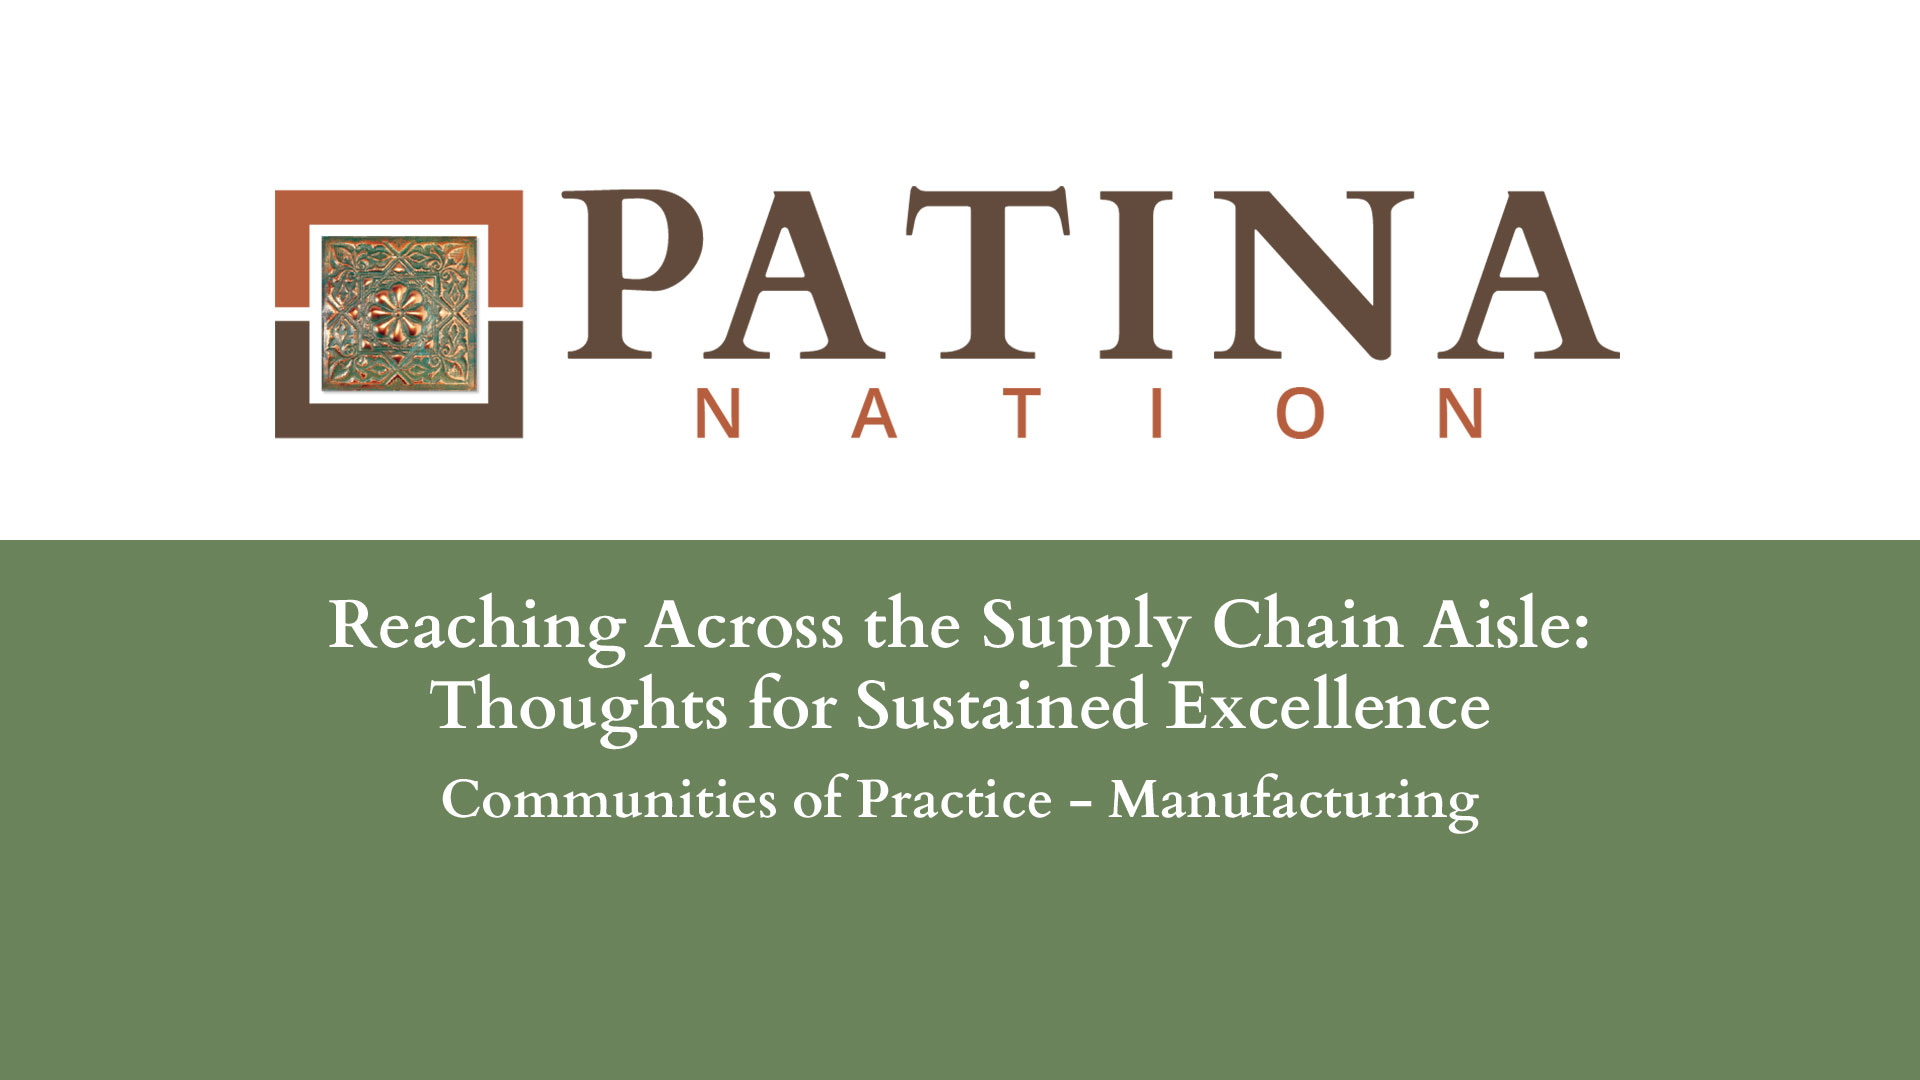 Reaching Across the Supply Chain Aisle